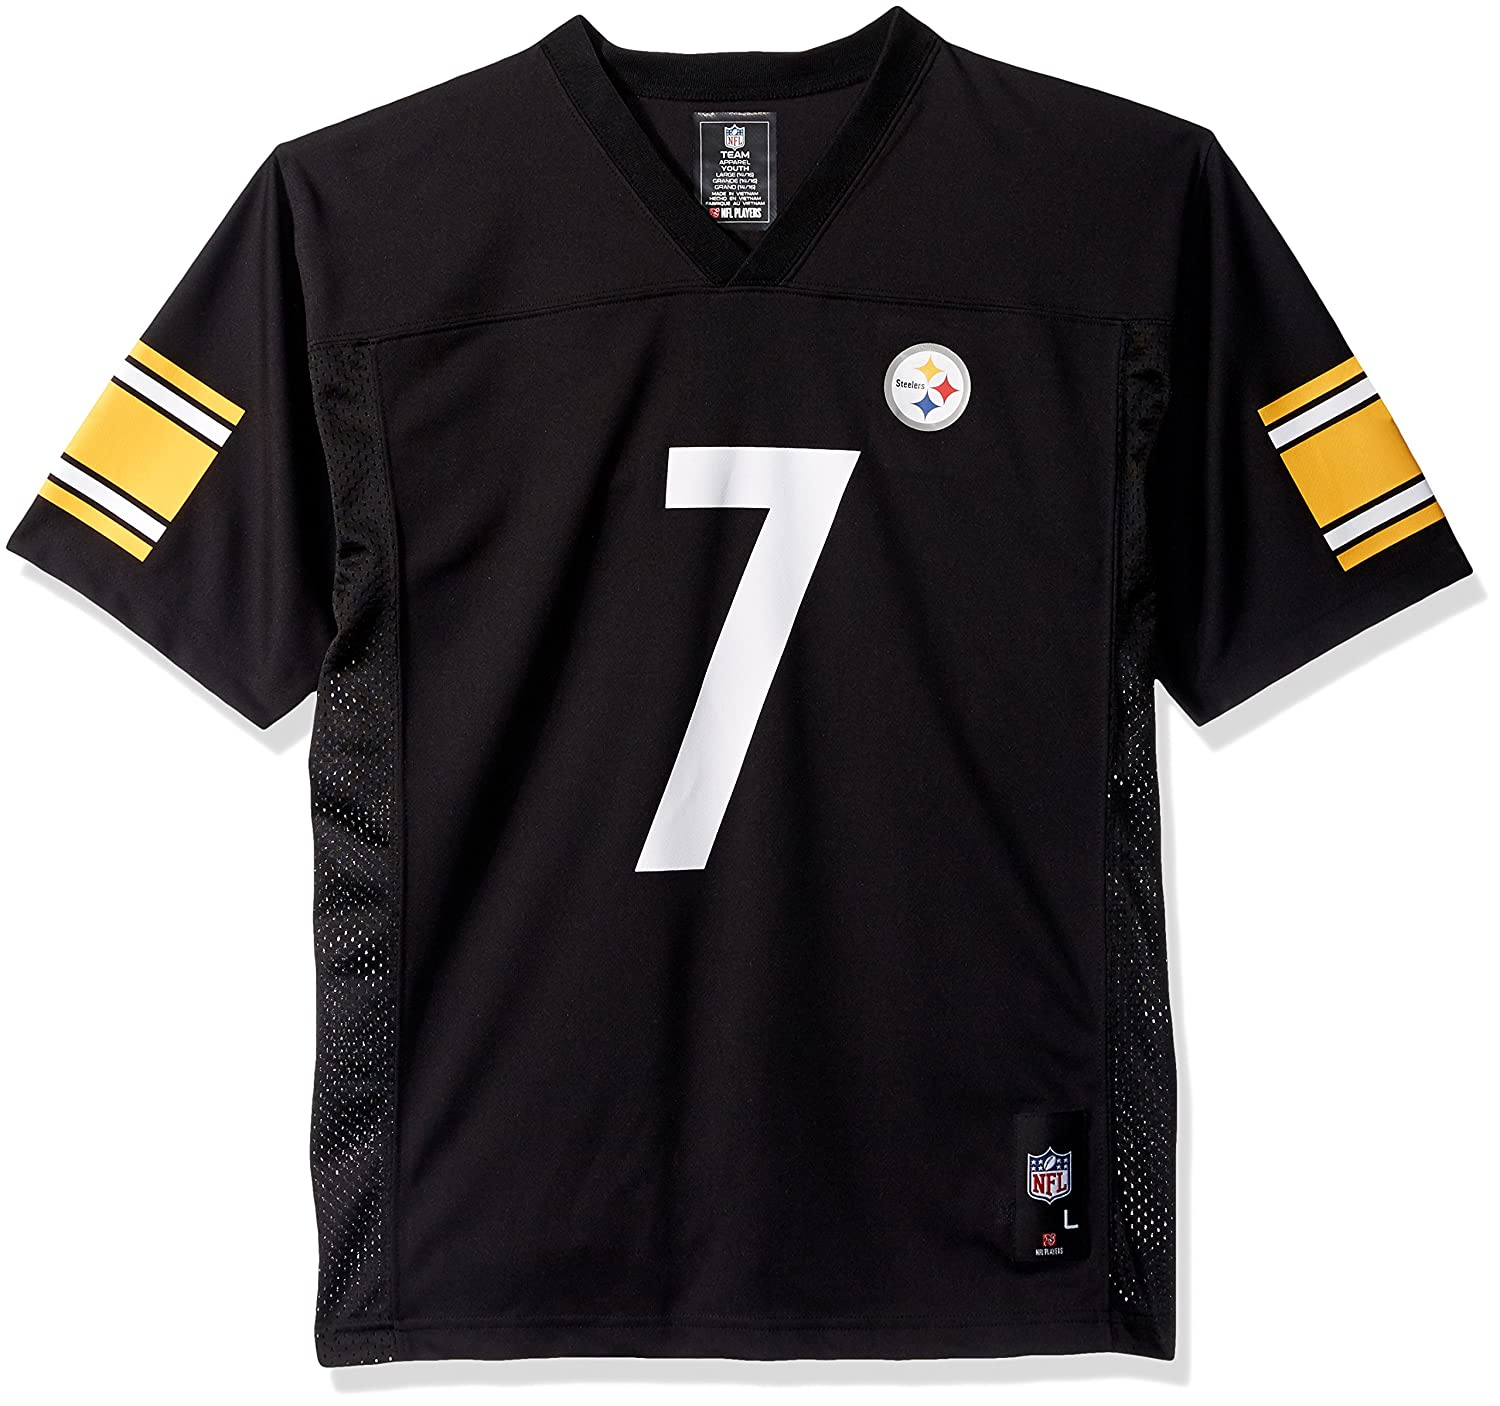 online retailer dad4f e6778 Outerstuff Ben Roethlisberger Pittsburgh Steelers Youth Black Jersey